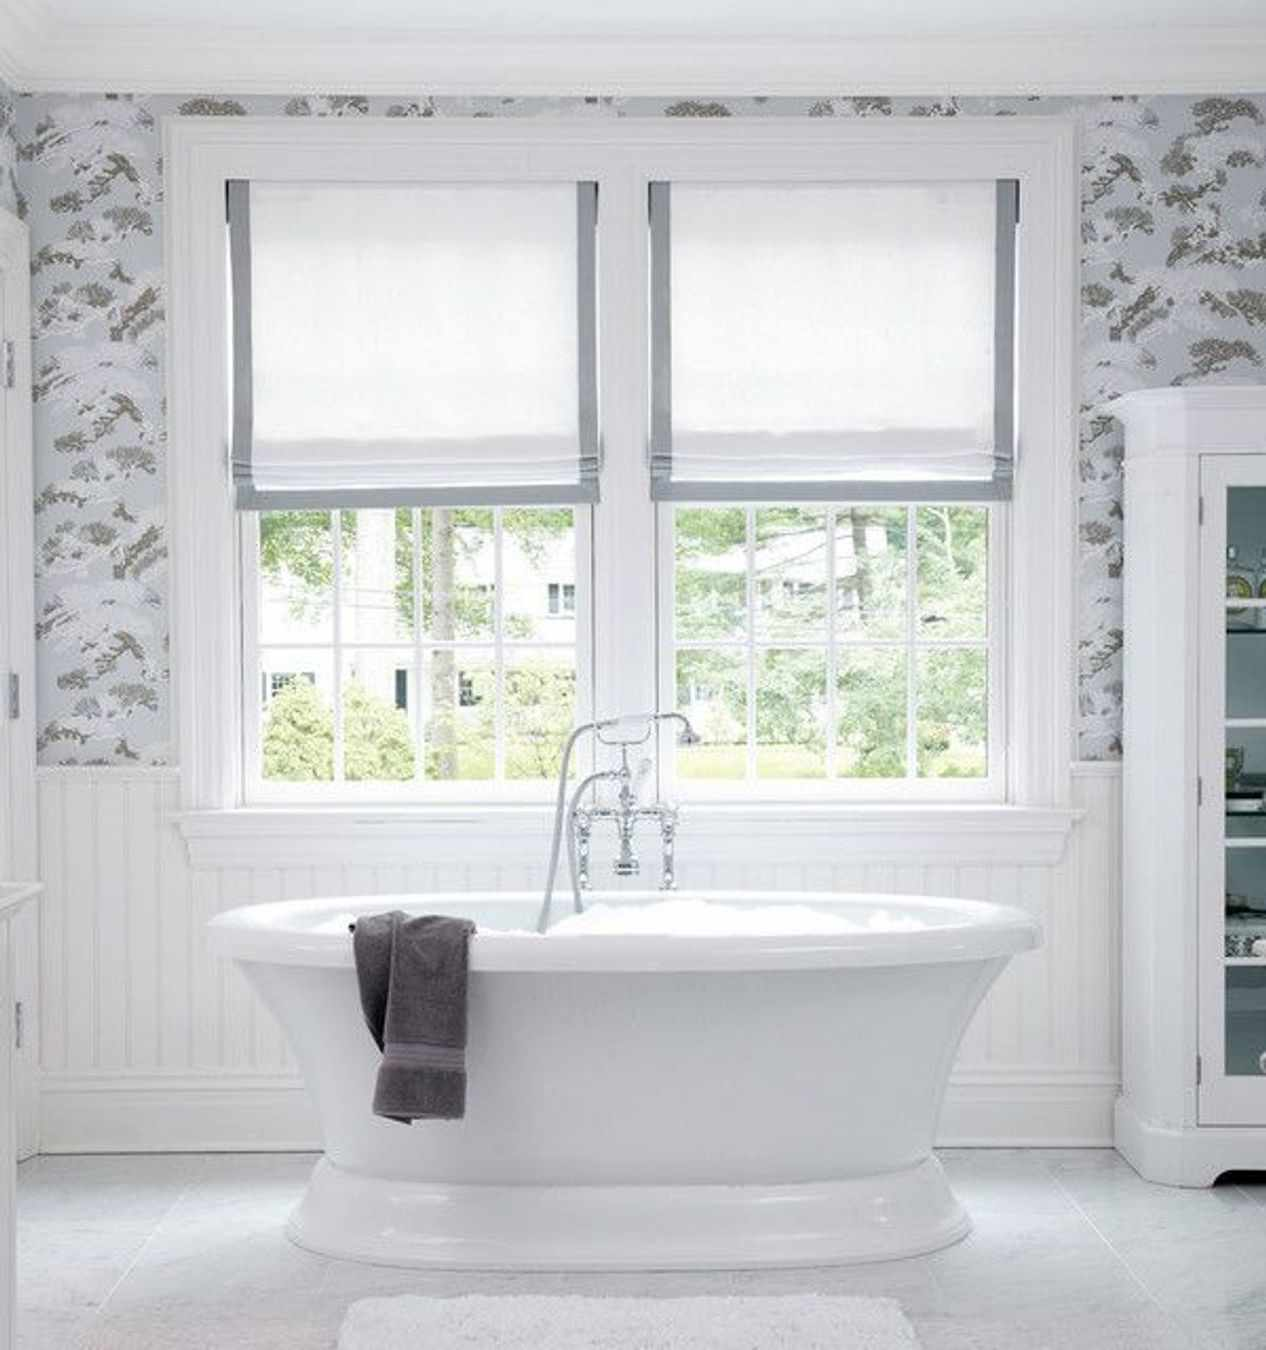 Bathroom Windows 9 bathroom window treatment ideas | deco window fashions